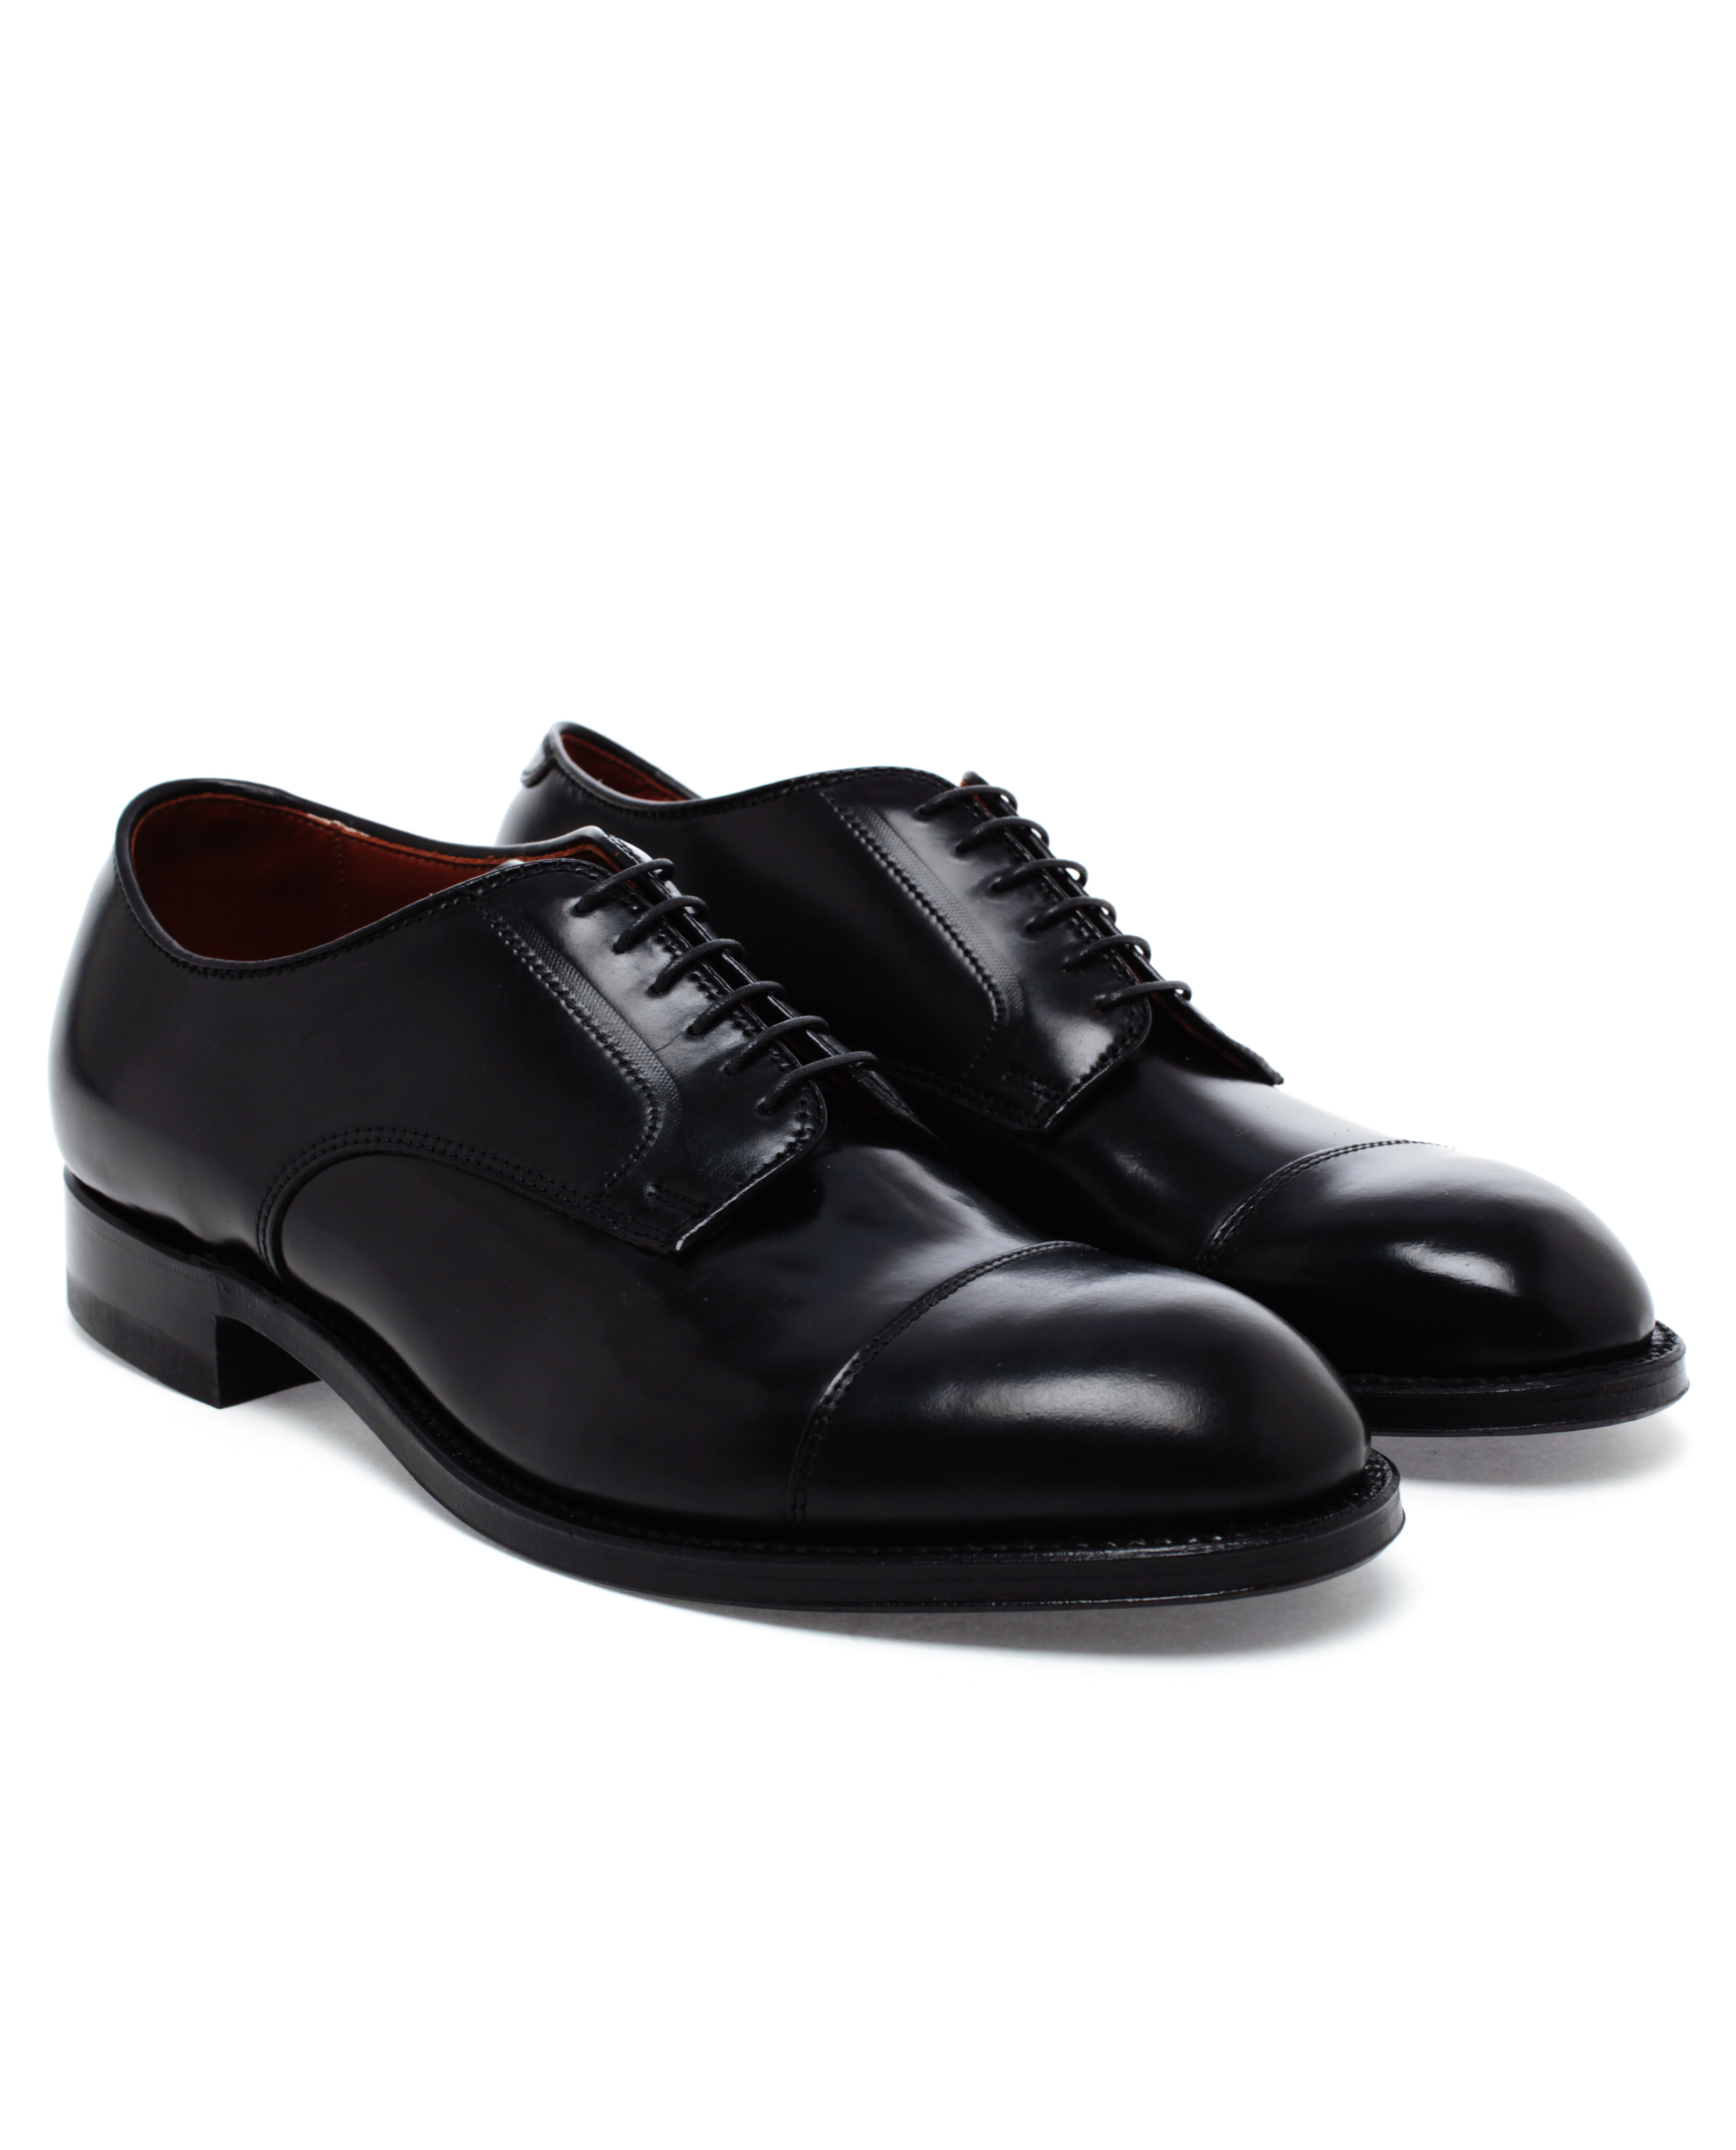 Alden Lace Up Shoes